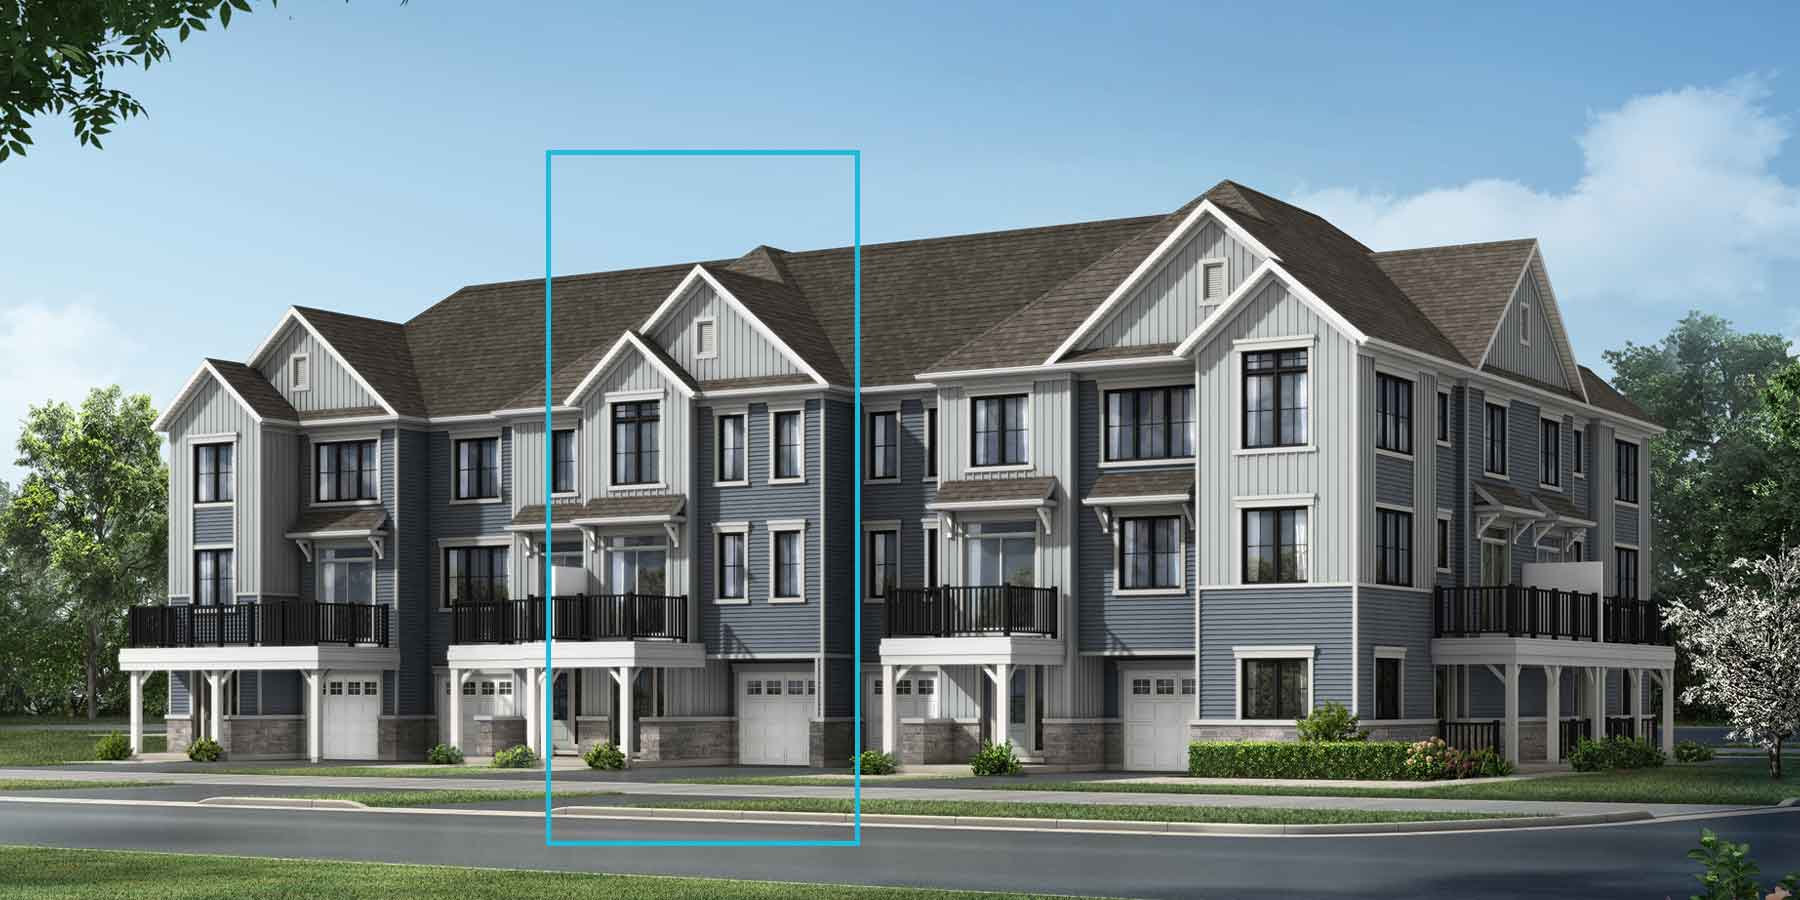 Flagstone Plan TownHomes at Promenade in Barrhaven Ontario by Mattamy Homes